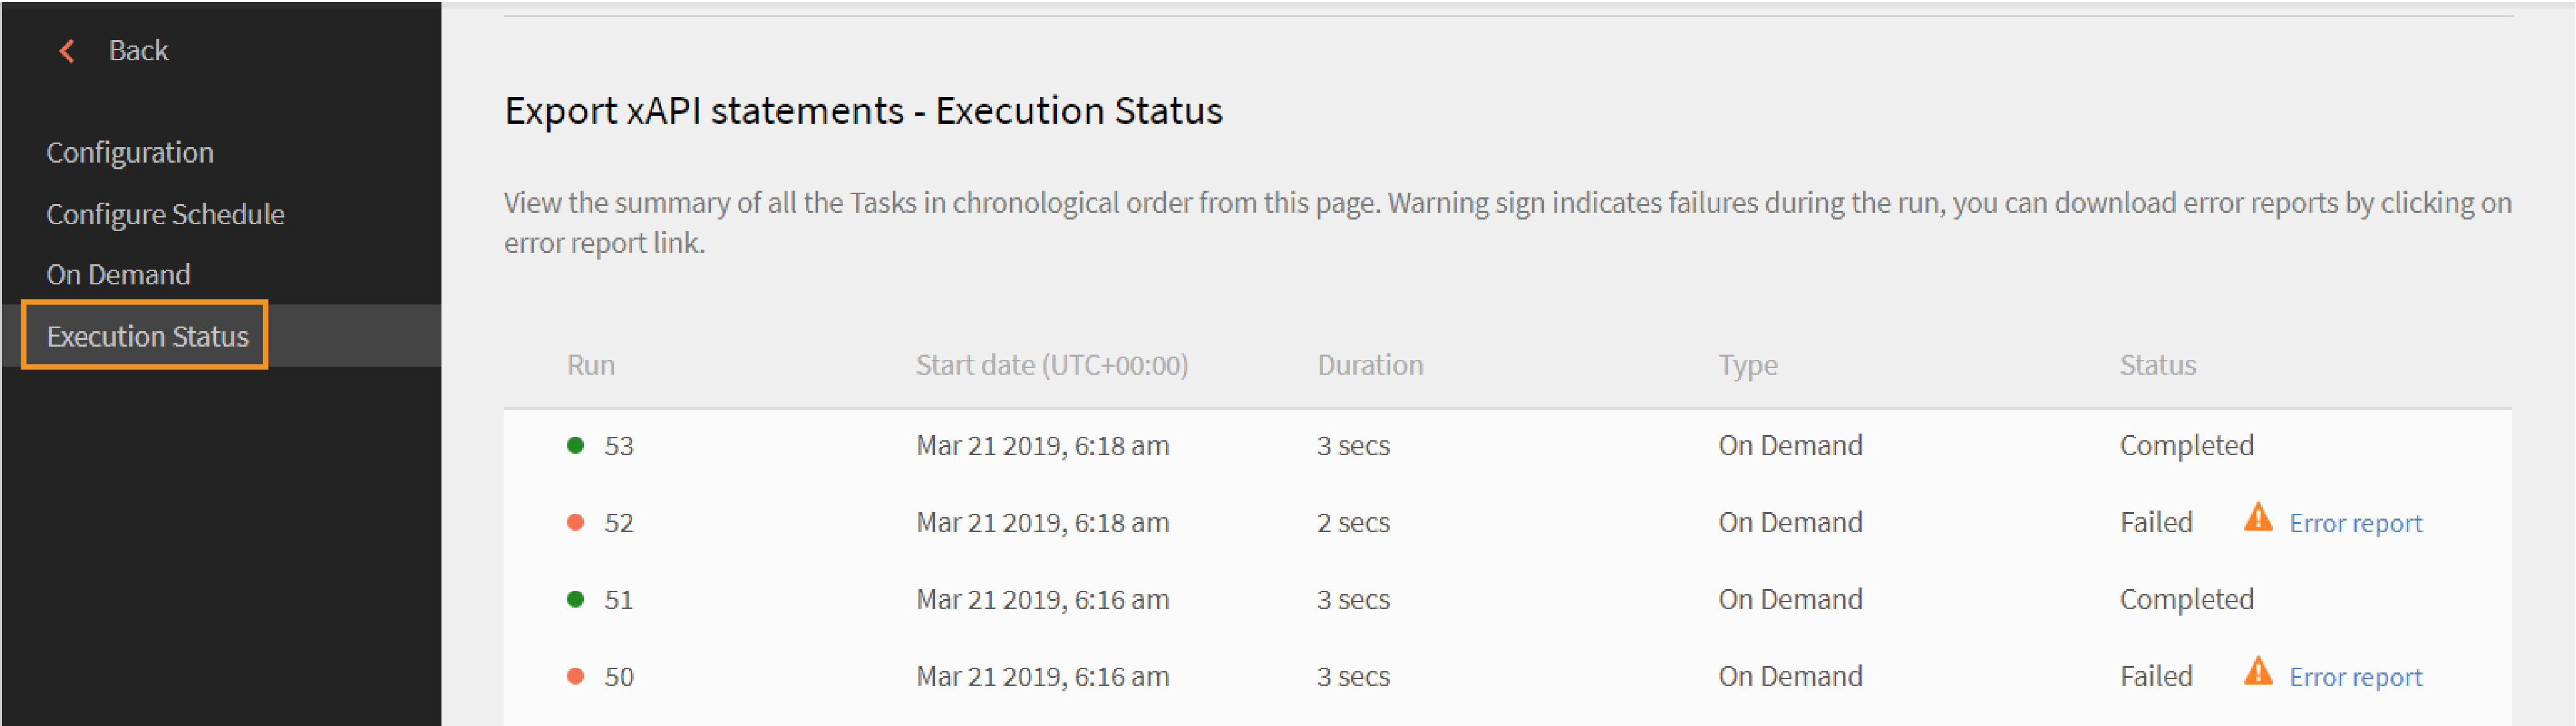 xAPI Export Execution Status